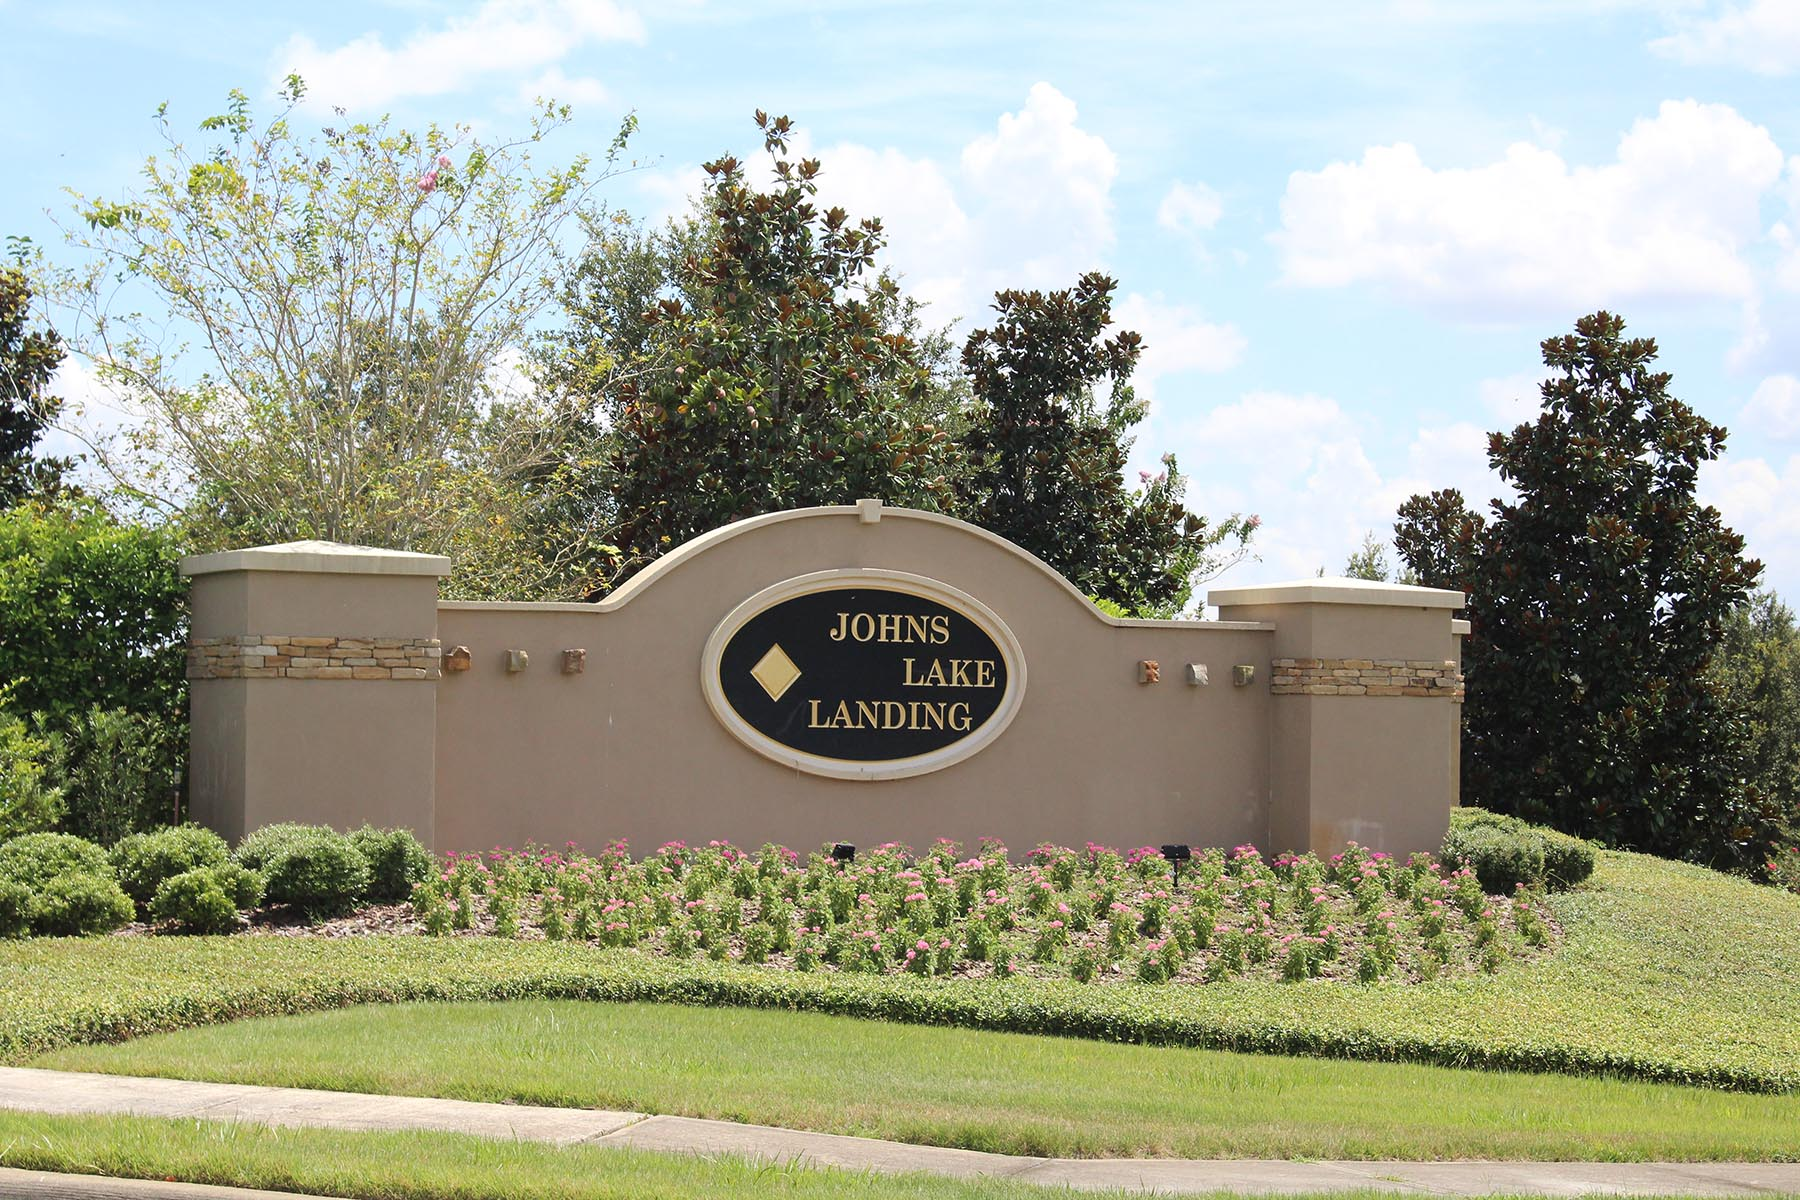 John's Lake Landing Entrance Sign